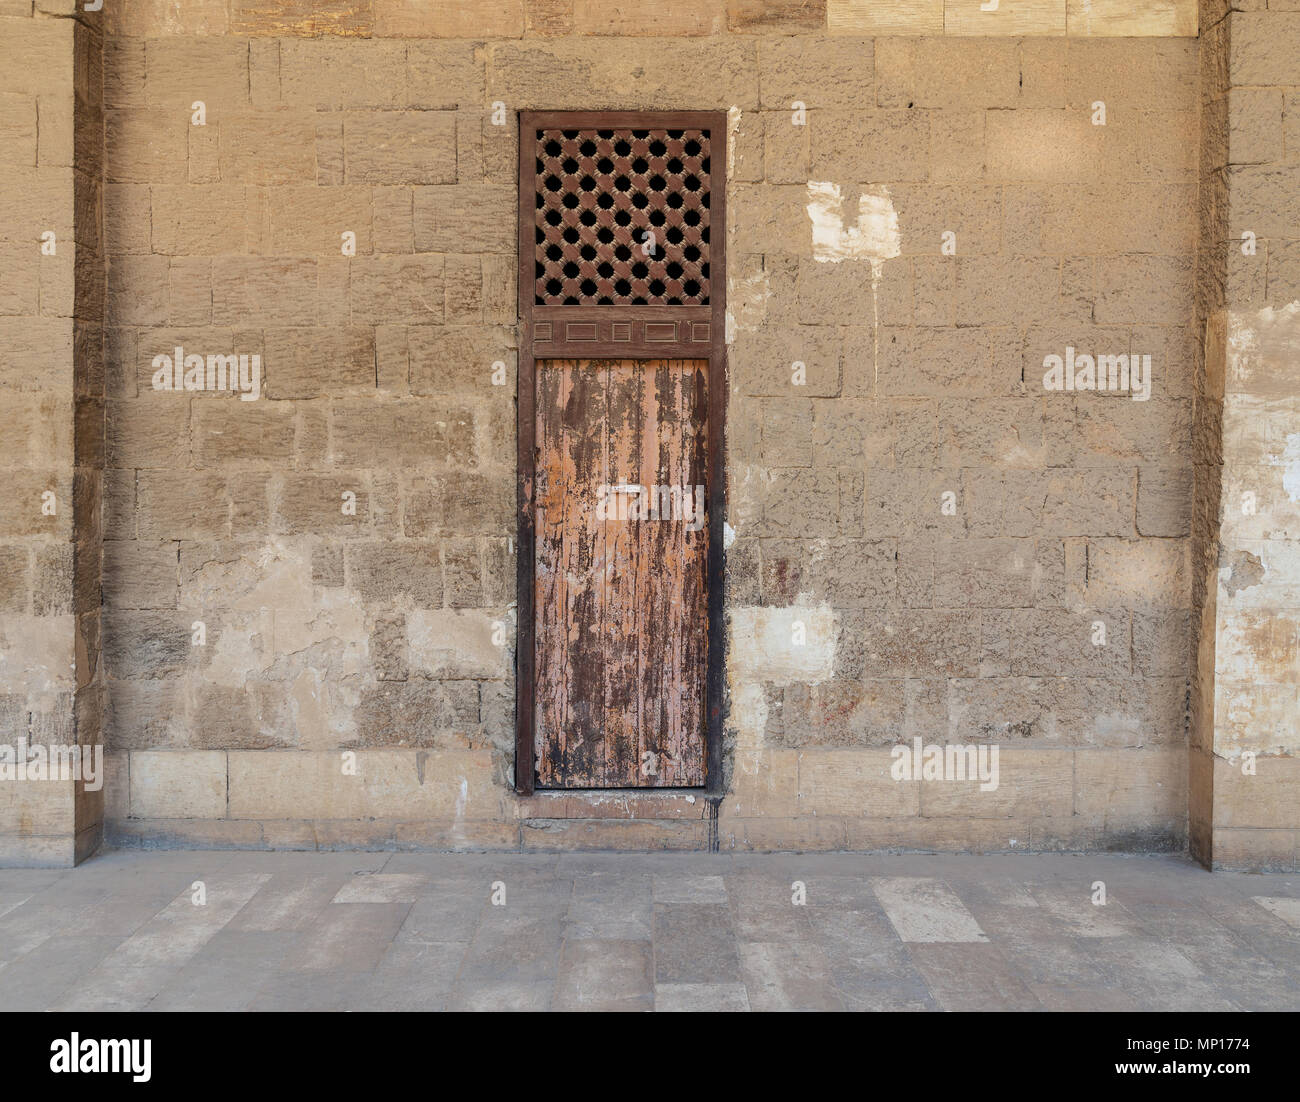 Facade of old abandoned stone bricks wall with one weathered wooden door and wooden grid window, Old Cairo, Egypt - Stock Image